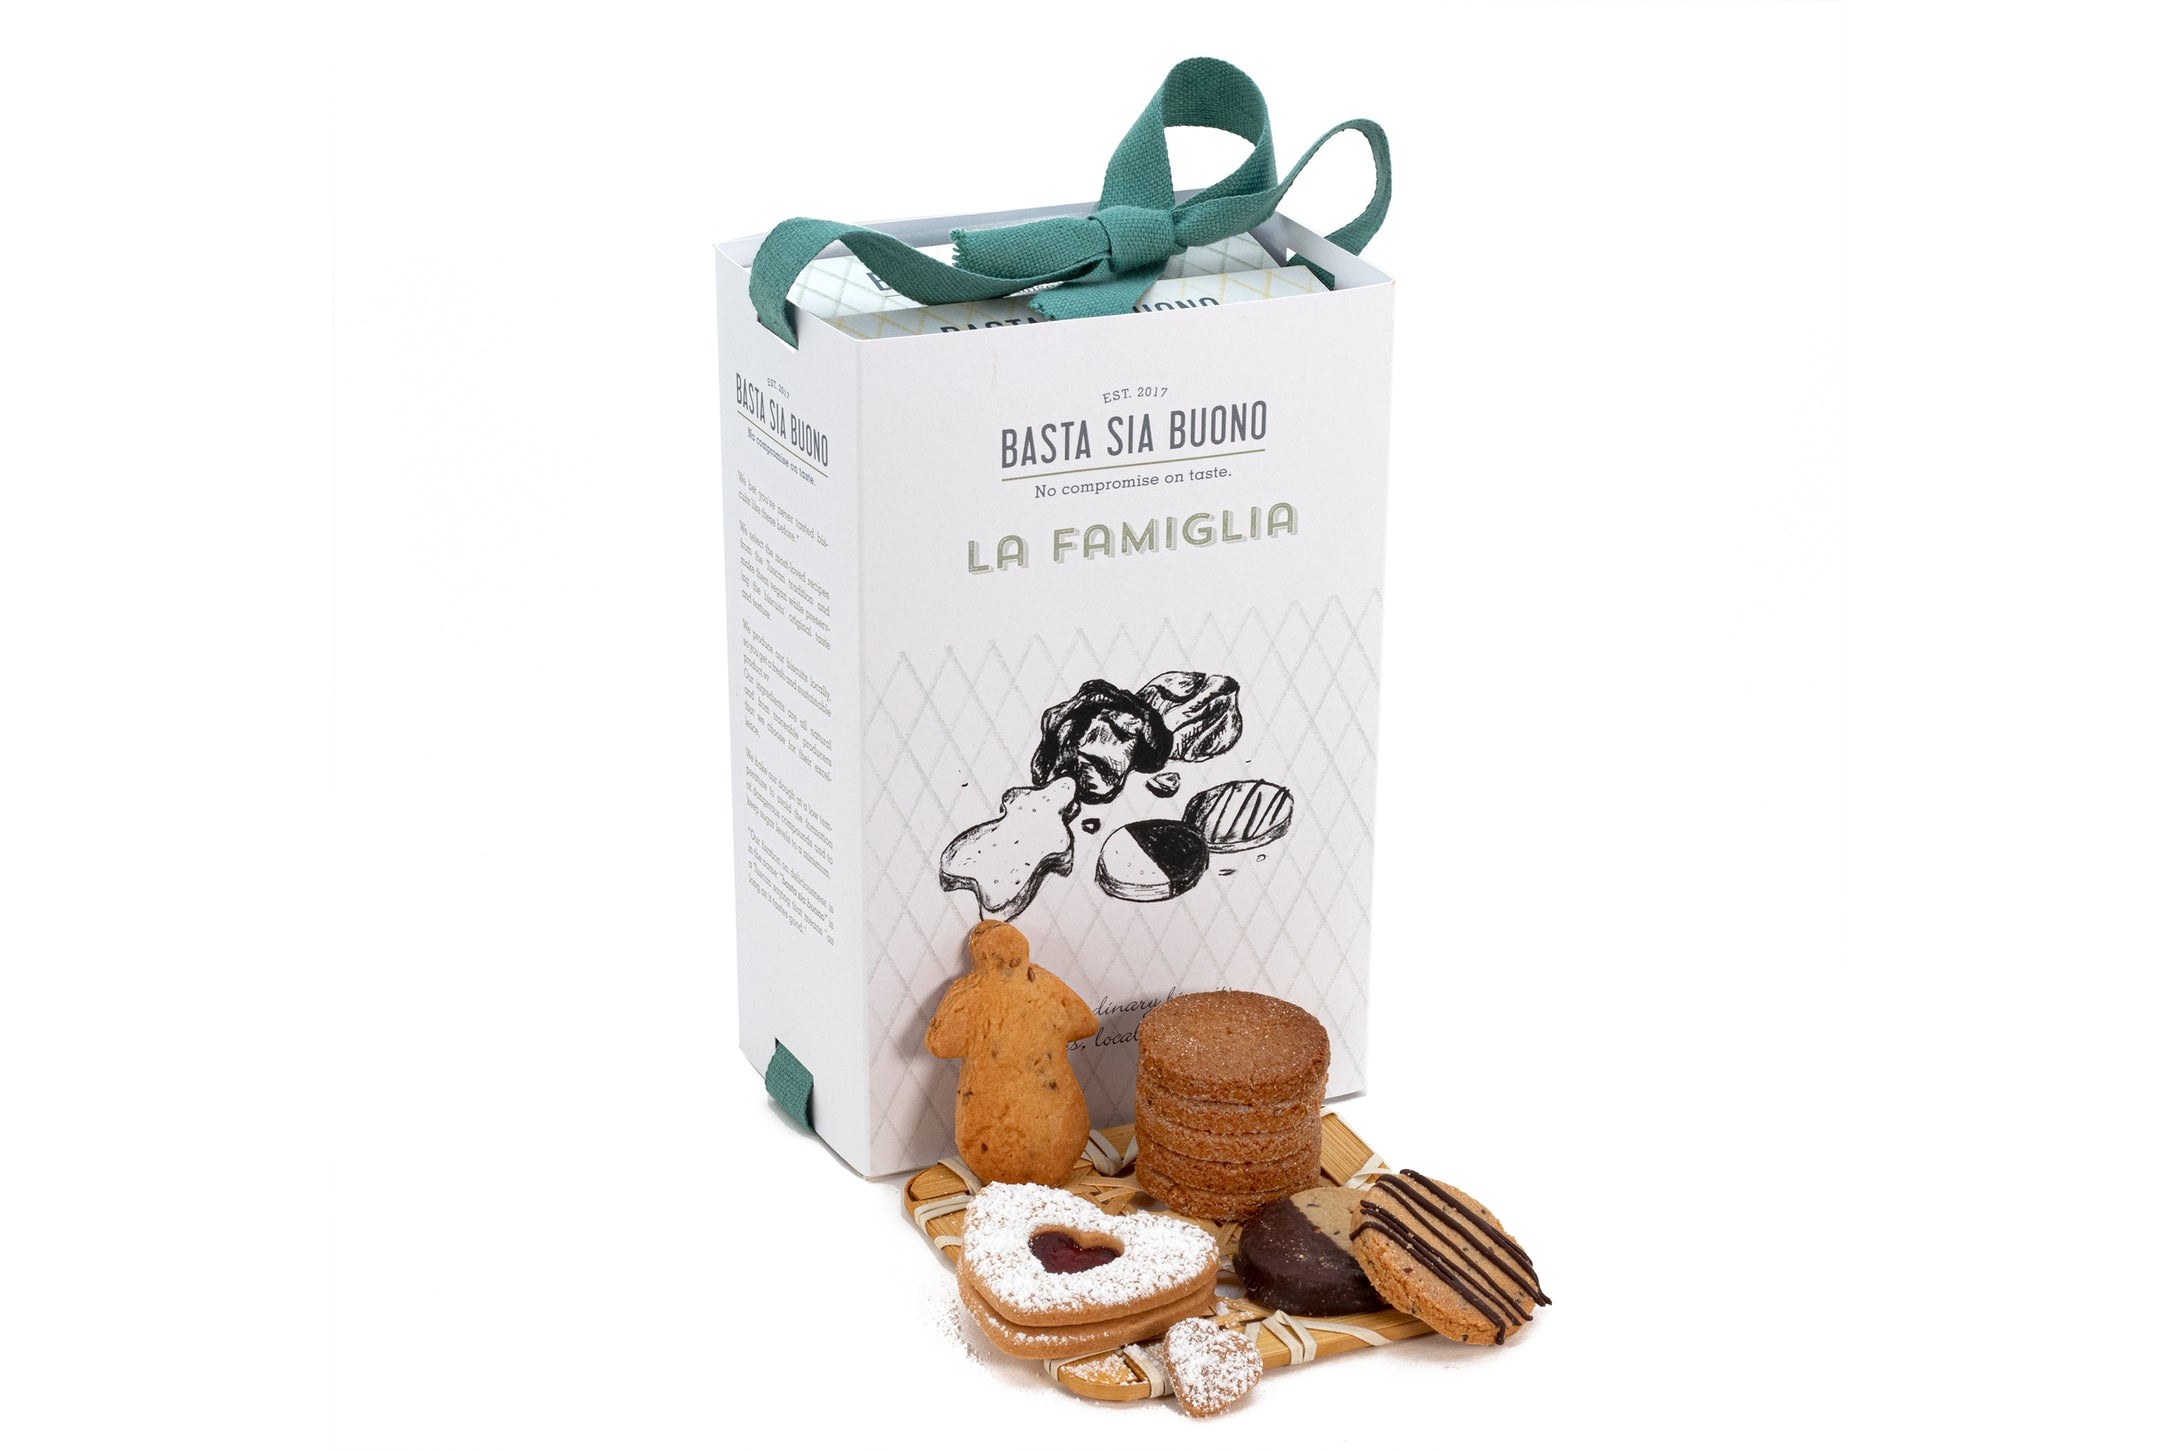 La Famiglia: get all flavours of our vegan cookies in a box.